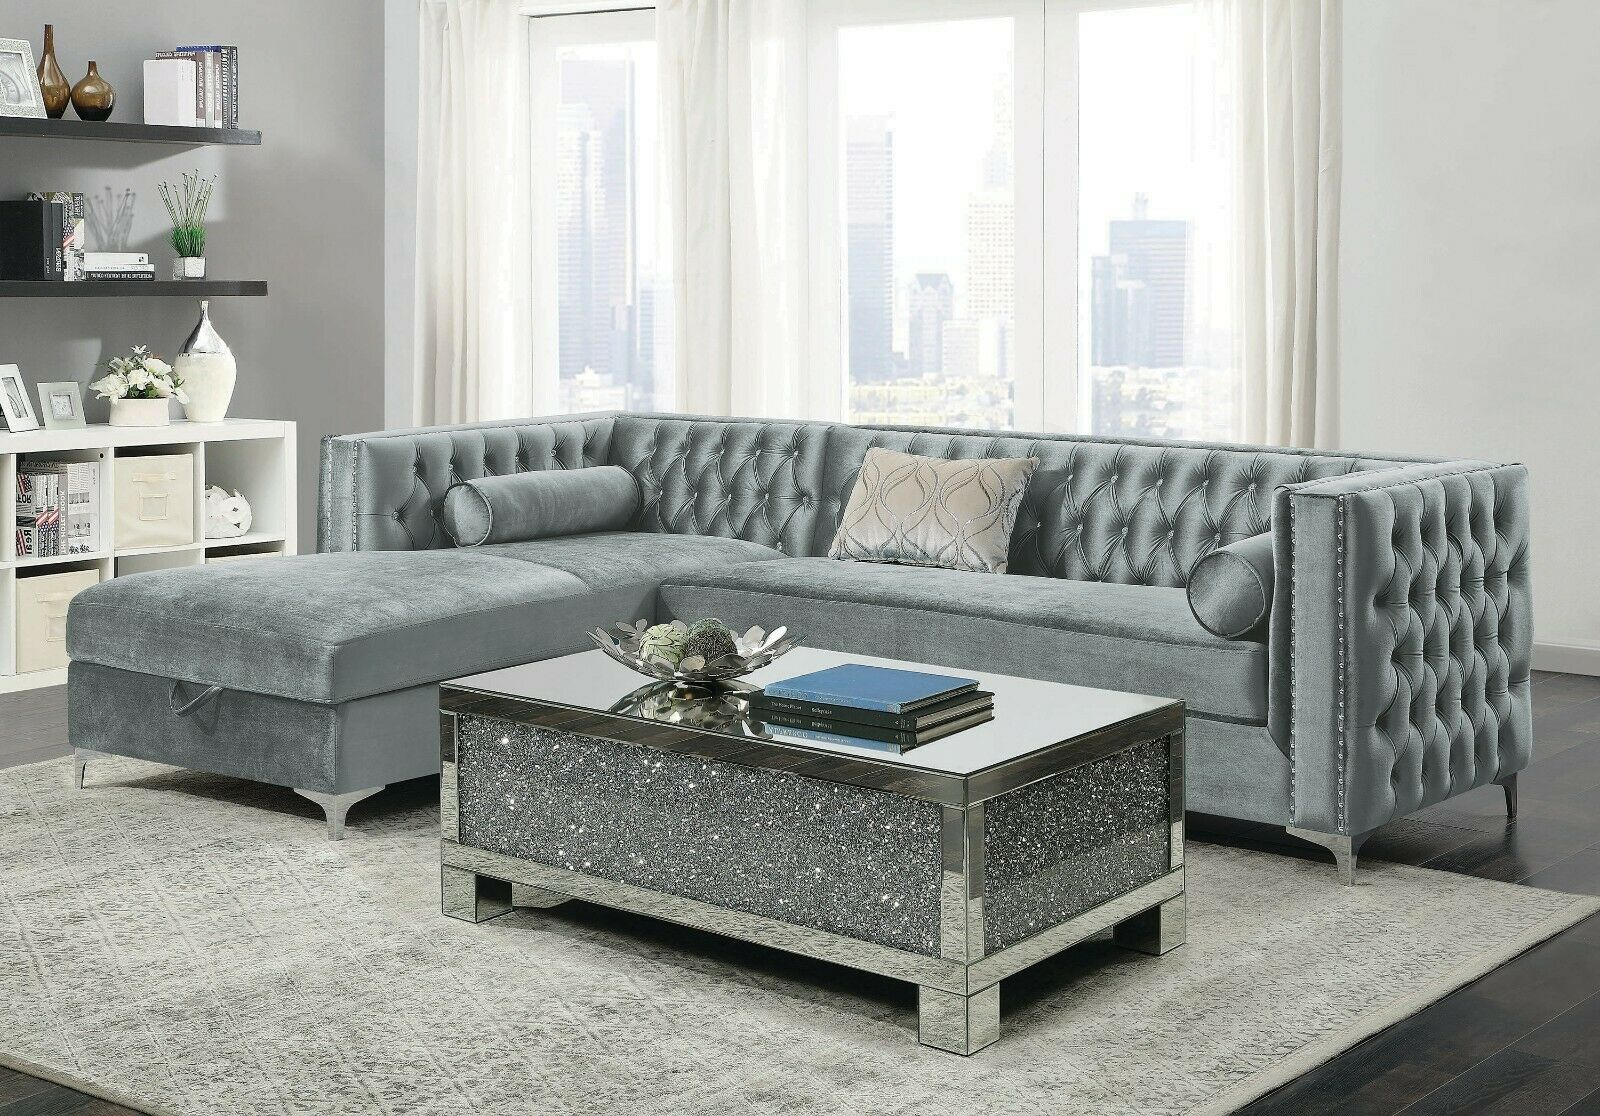 CONTEMPORARY SILVER VELVET STORAGE SOFA SECTIONAL LIVING ROOM FURNITURE SET  SALE